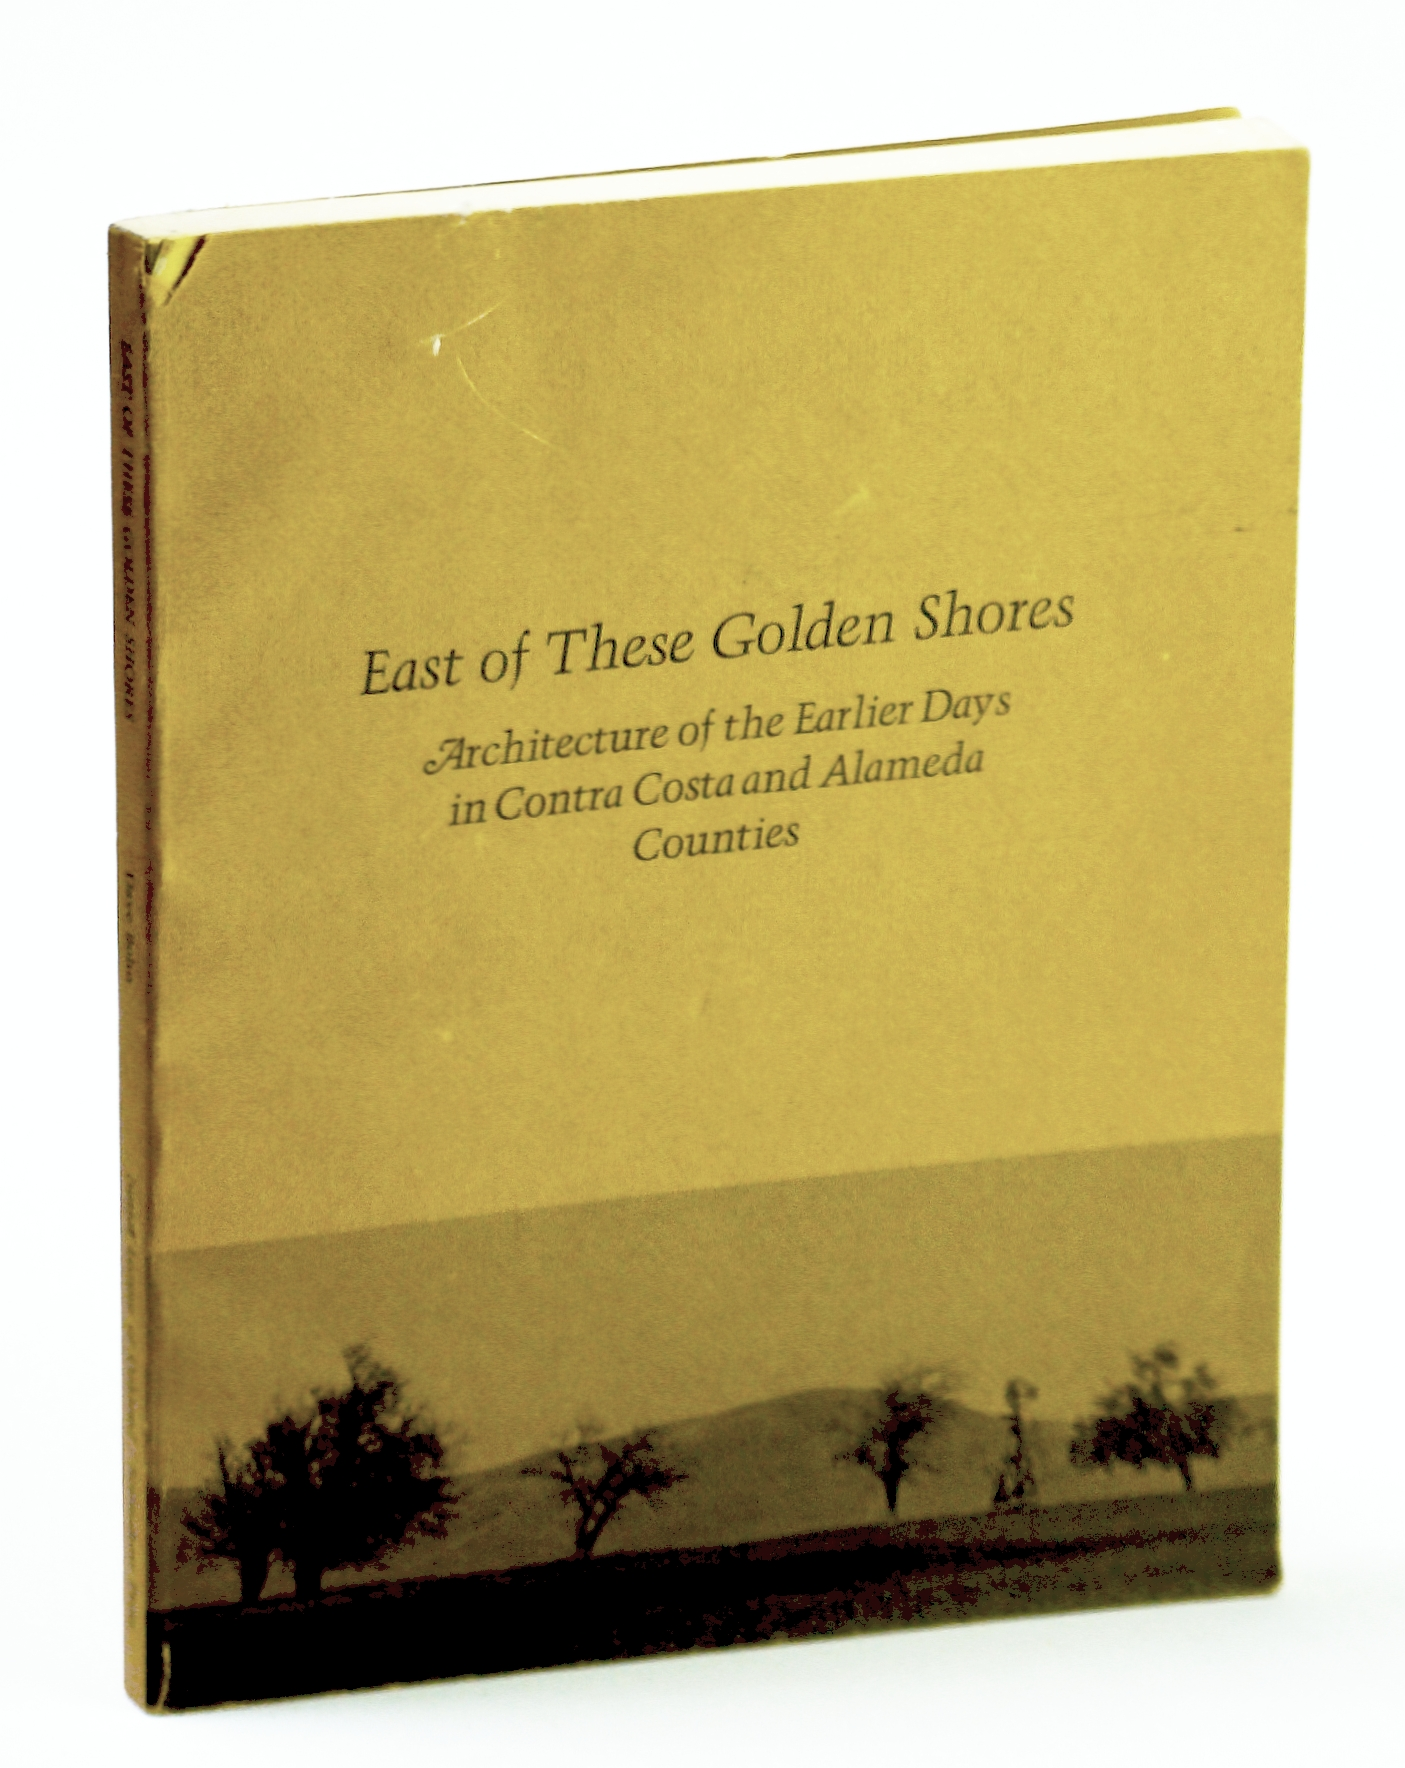 Image for East of These Golden Shores: Architecture of the Earlier Days in Contra Costa and Almeda Counties